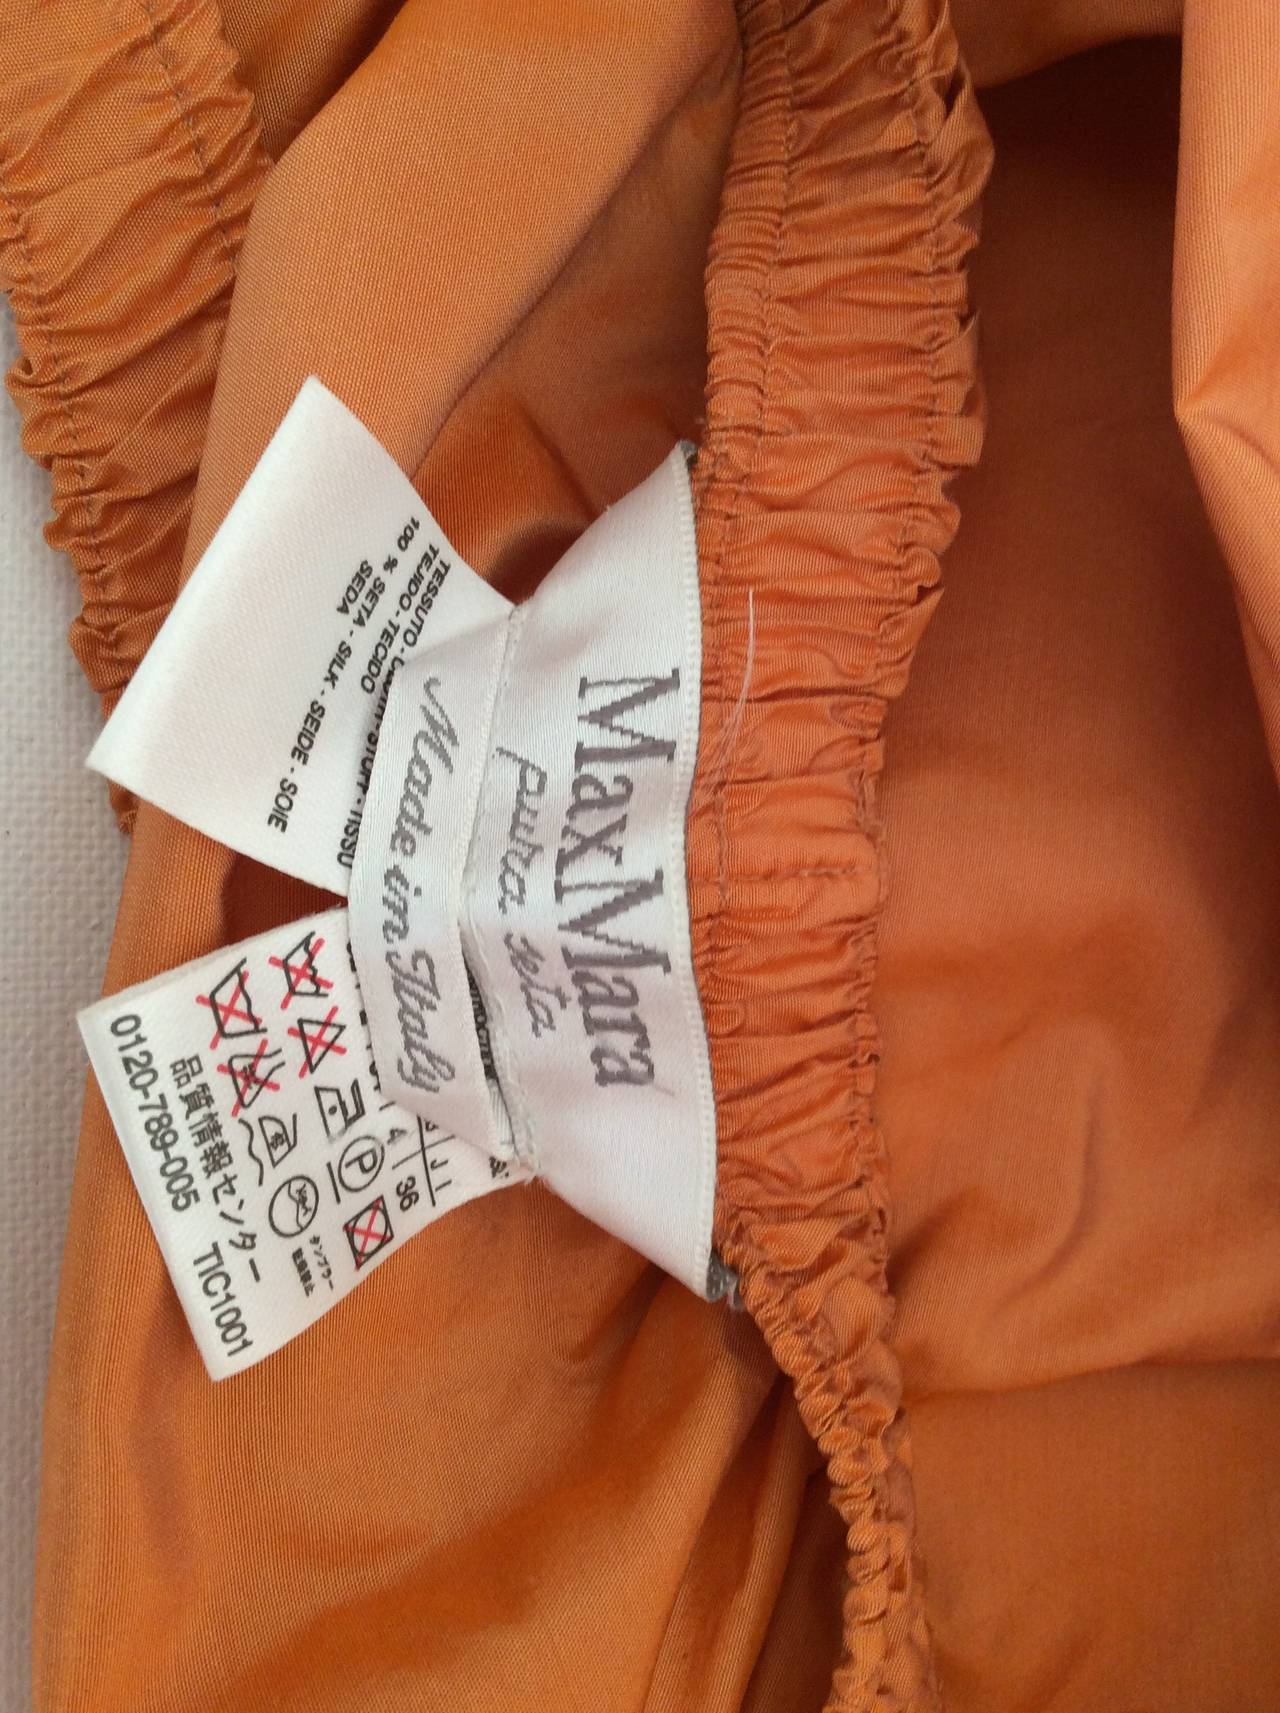 Max Mara Orange Silk Cropped Evening Top In Excellent Condition For Sale In Boca Raton, FL